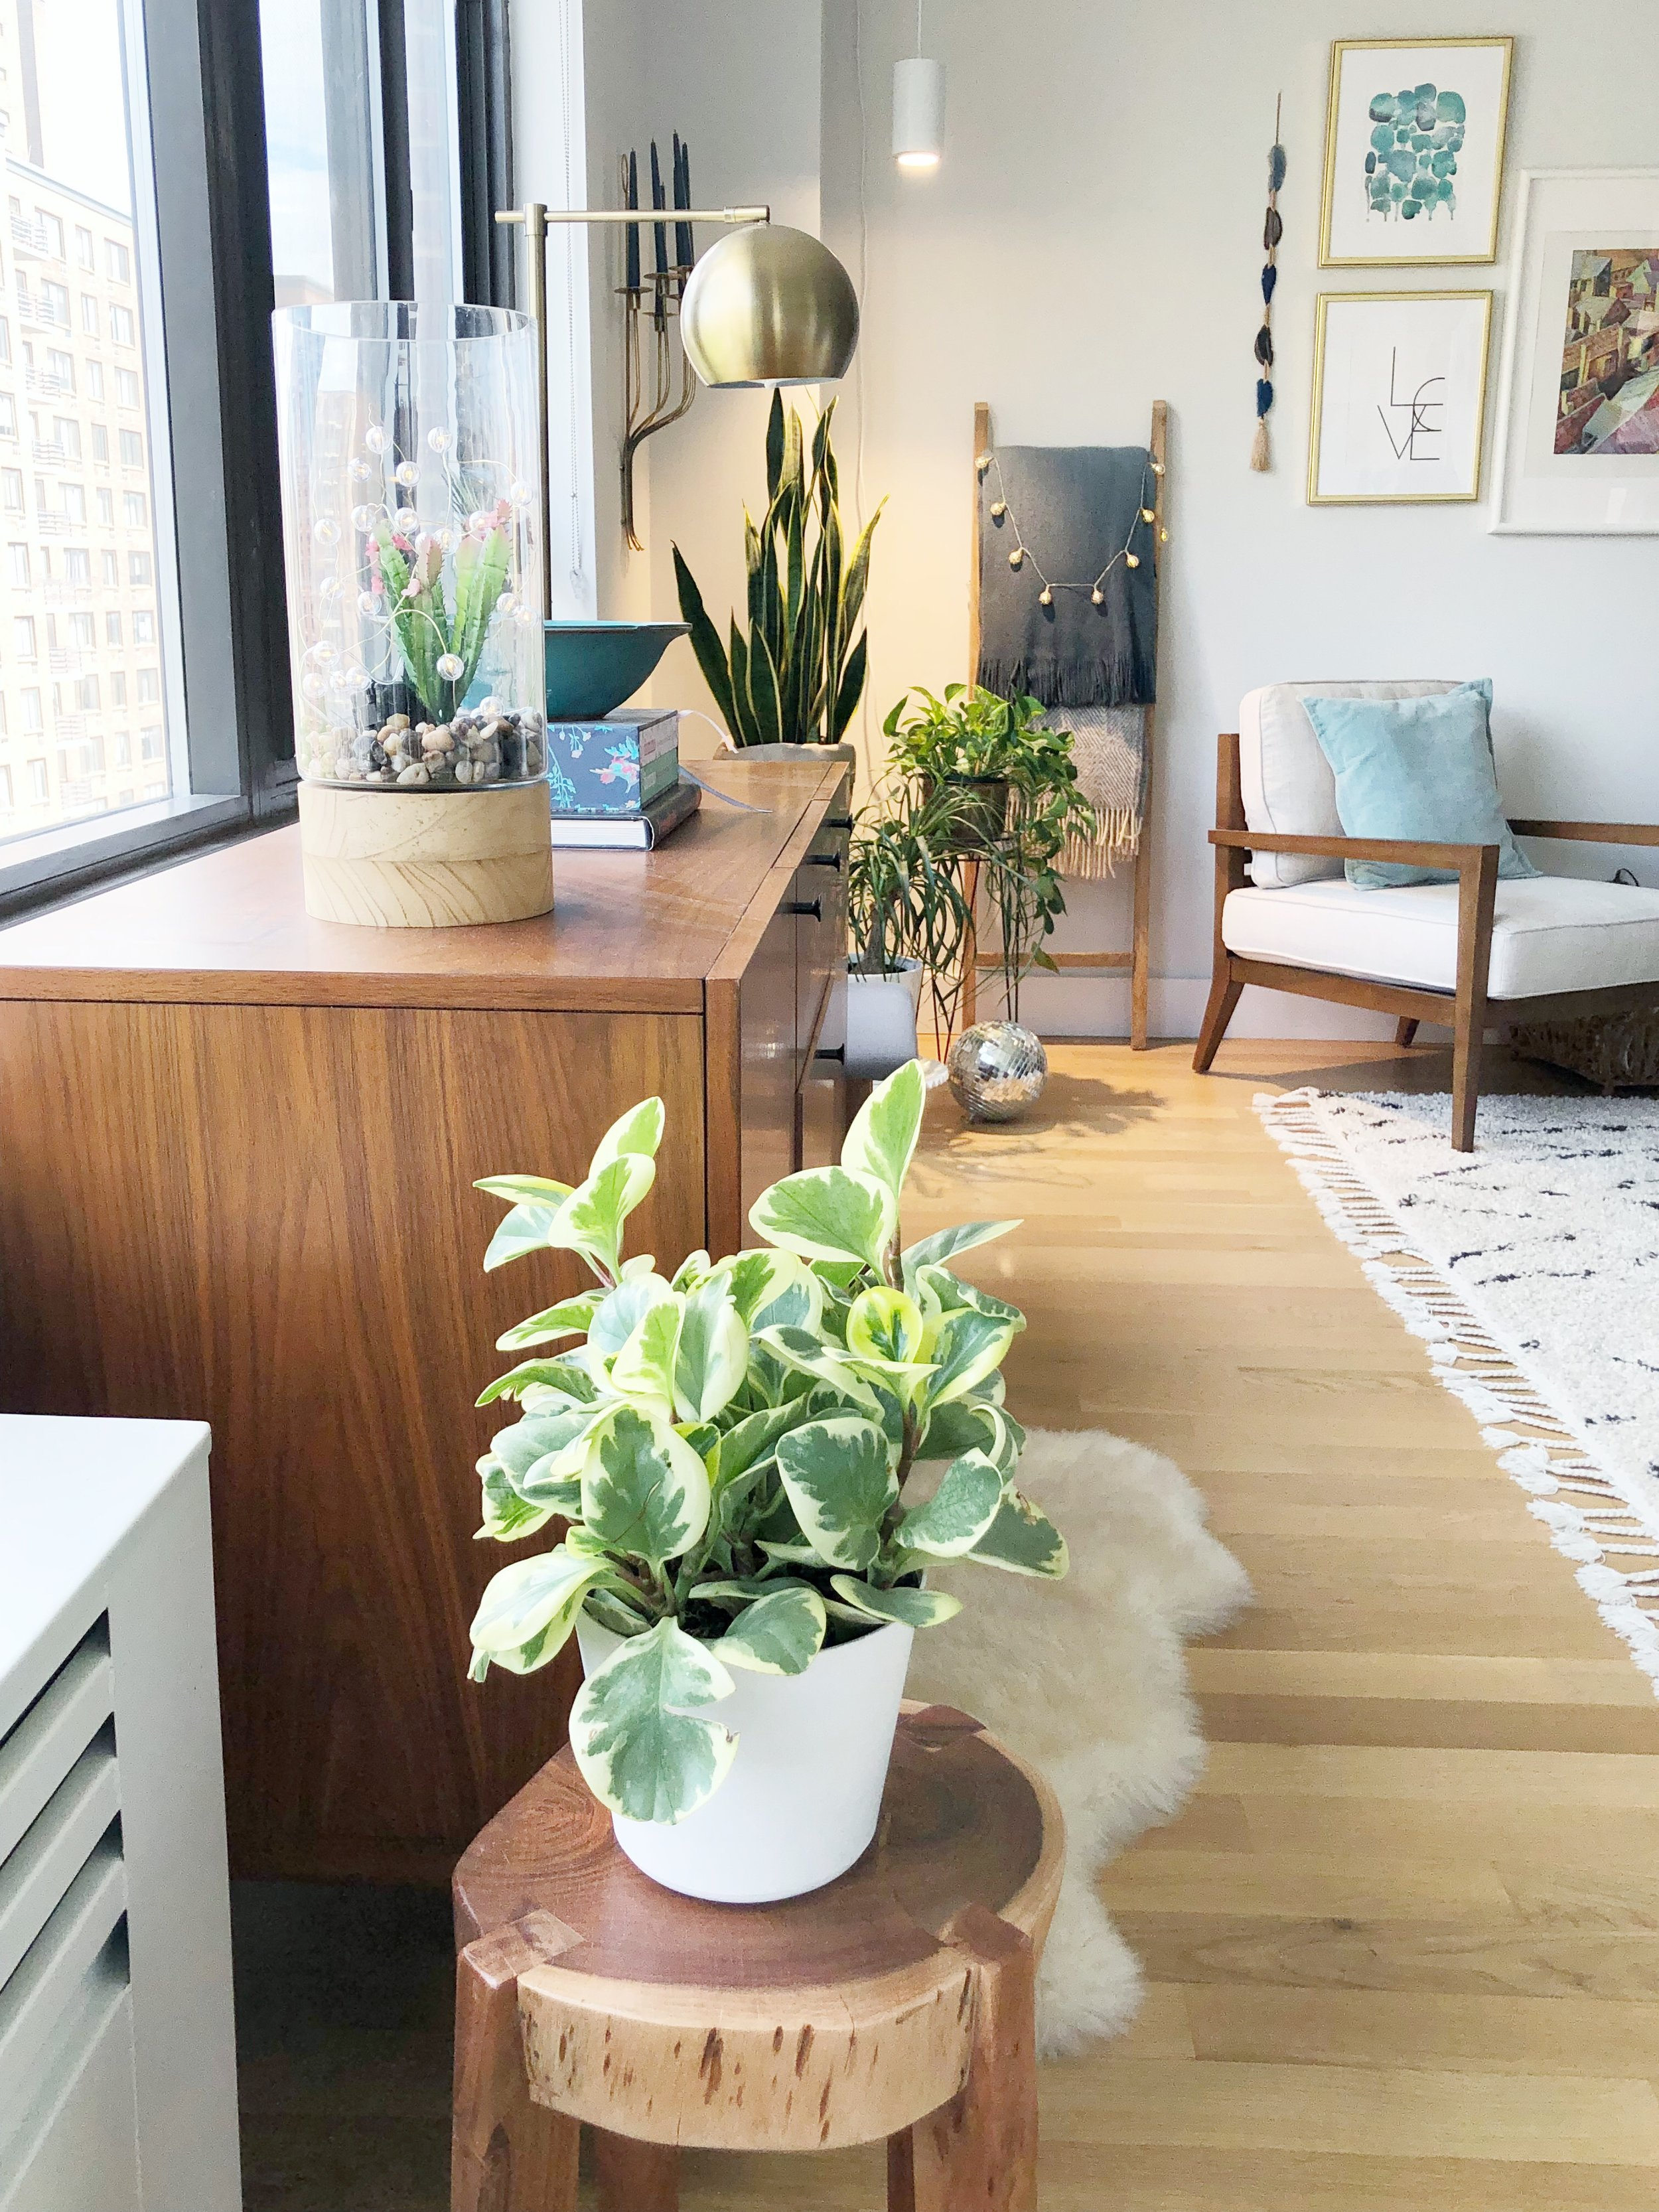 Plants make people happy, especially me! Adding a natural touch of greenery does so much for a room!